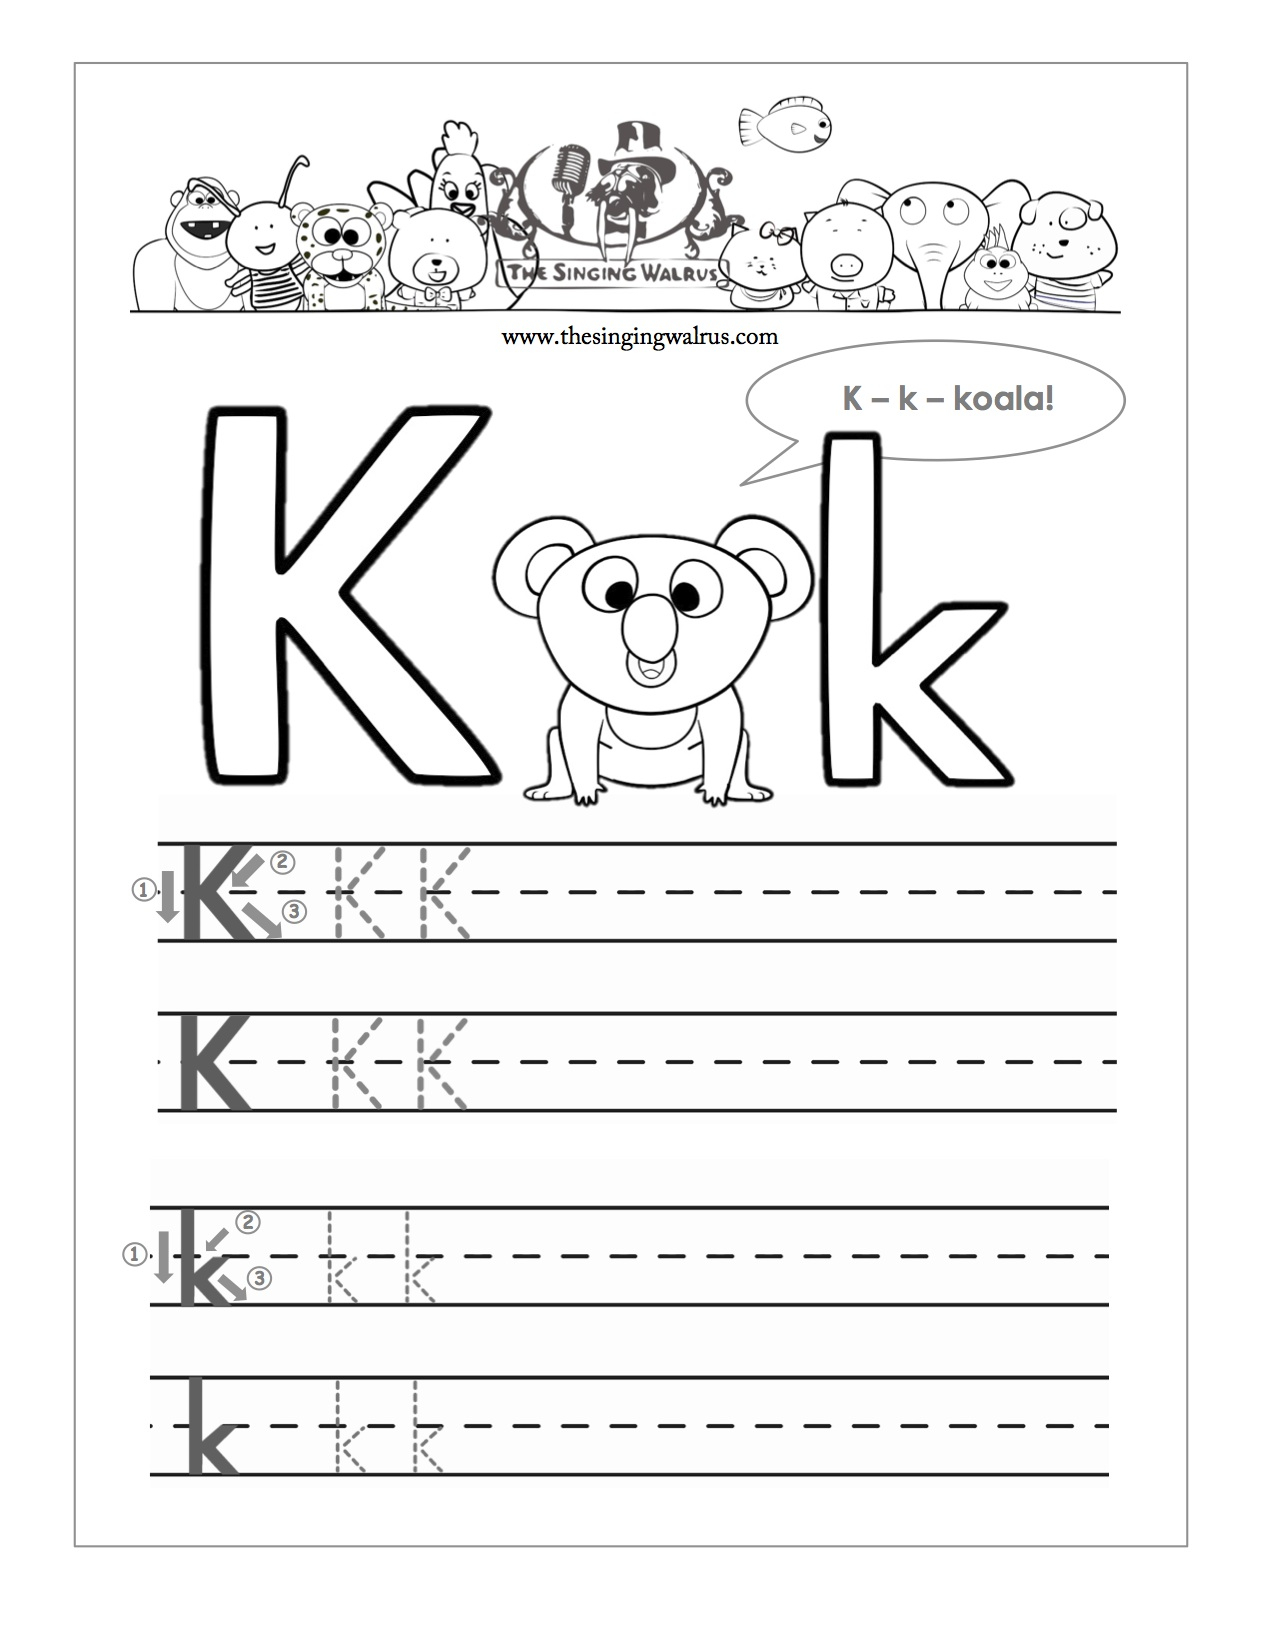 image about Letter K Printable called 15 Mastering the Letter K Worksheets